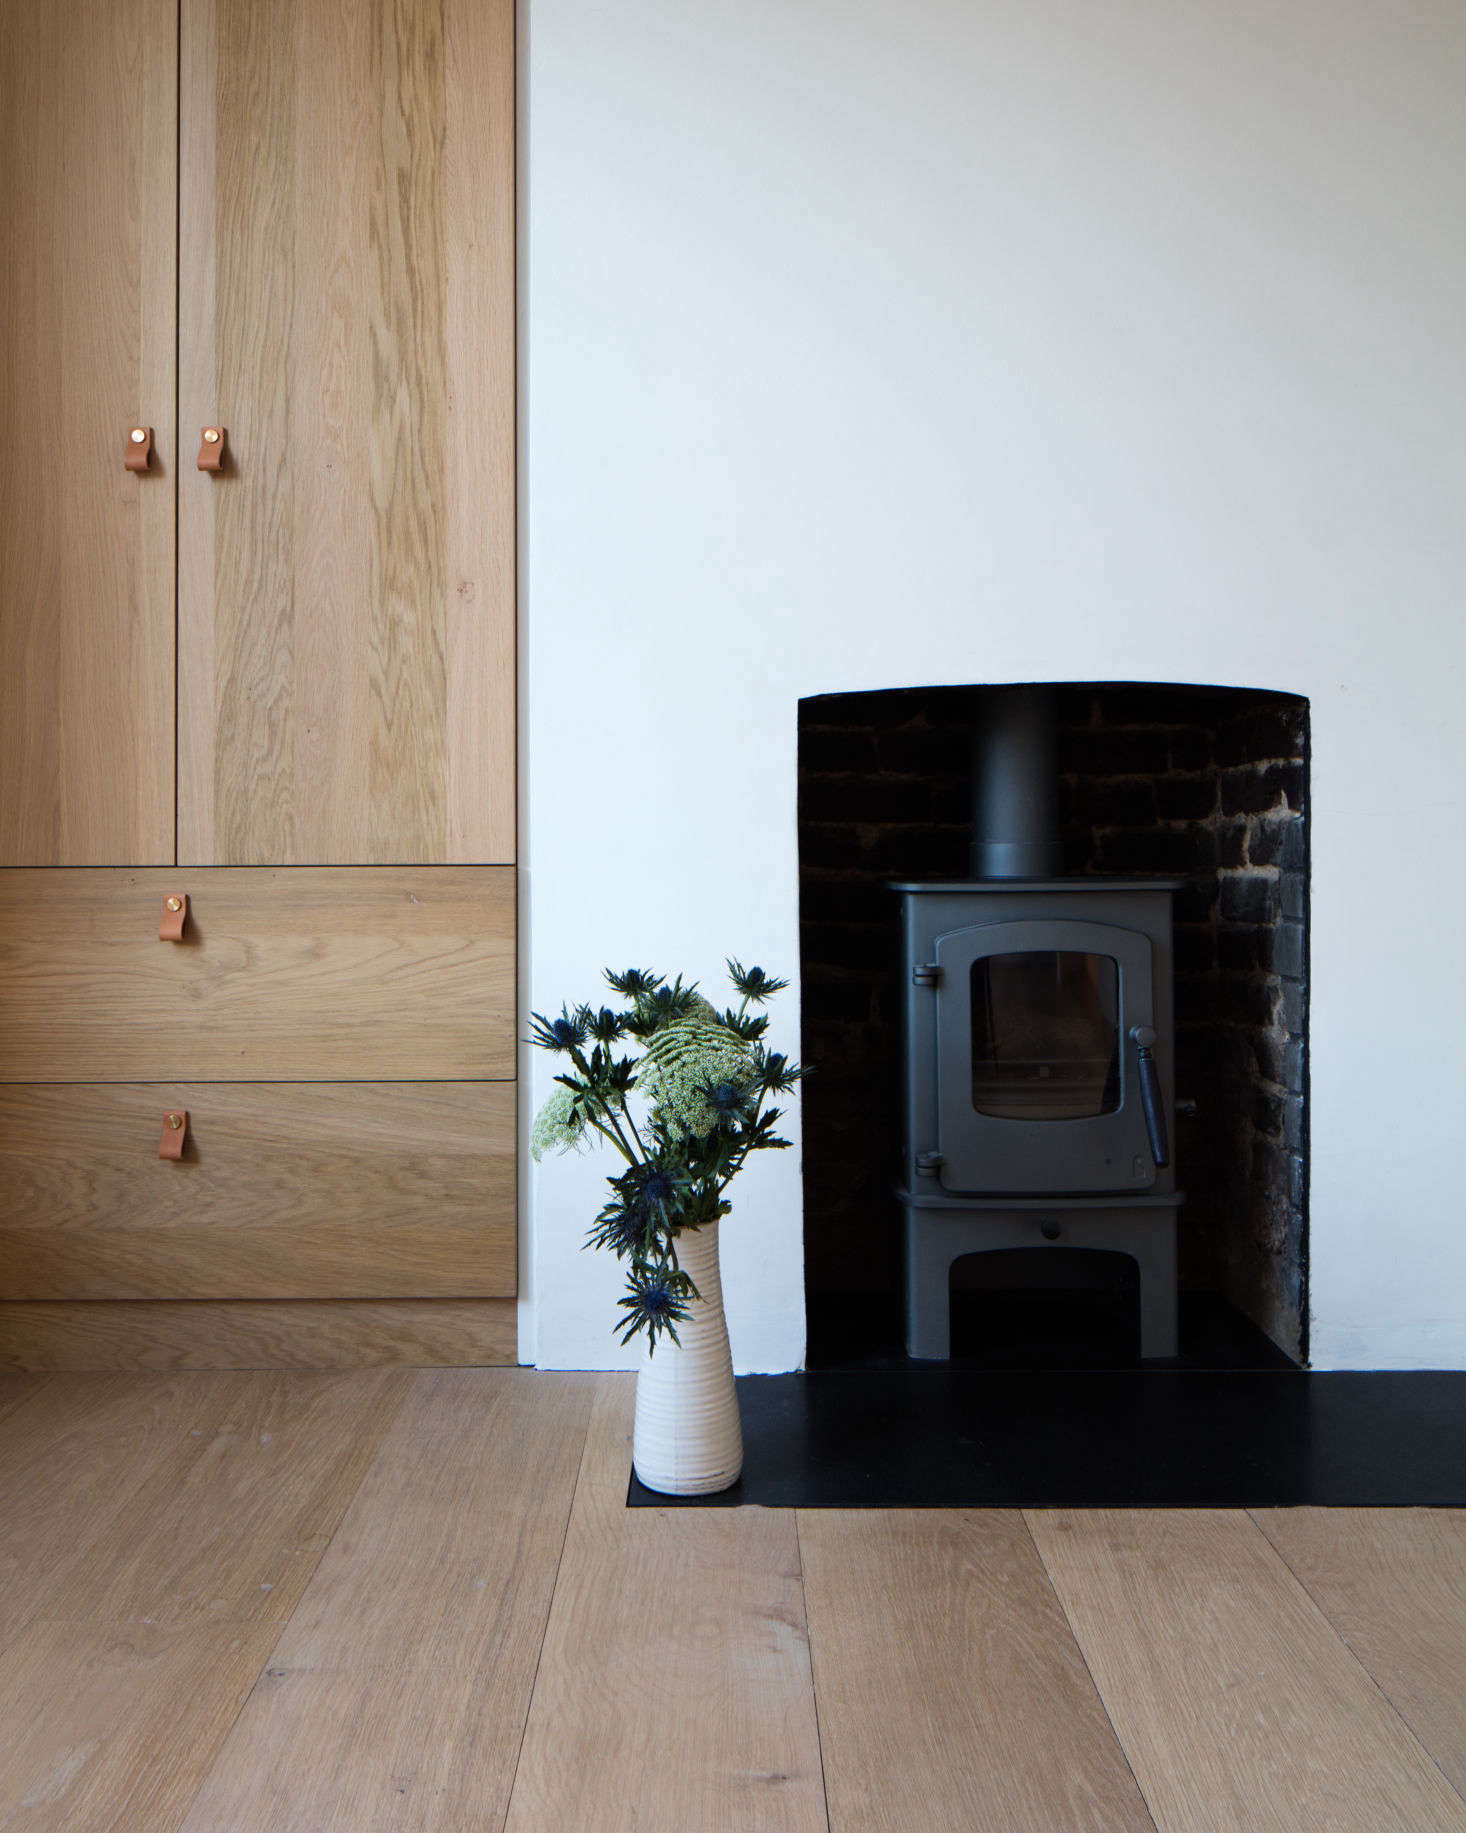 More evidence of the couple's predilection for wood-burning stoves. The cabinets are also Dinesen, designed by Tuck and built by Lionhead Construction. The leather cabinet pulls are Superfront'sLoop design.